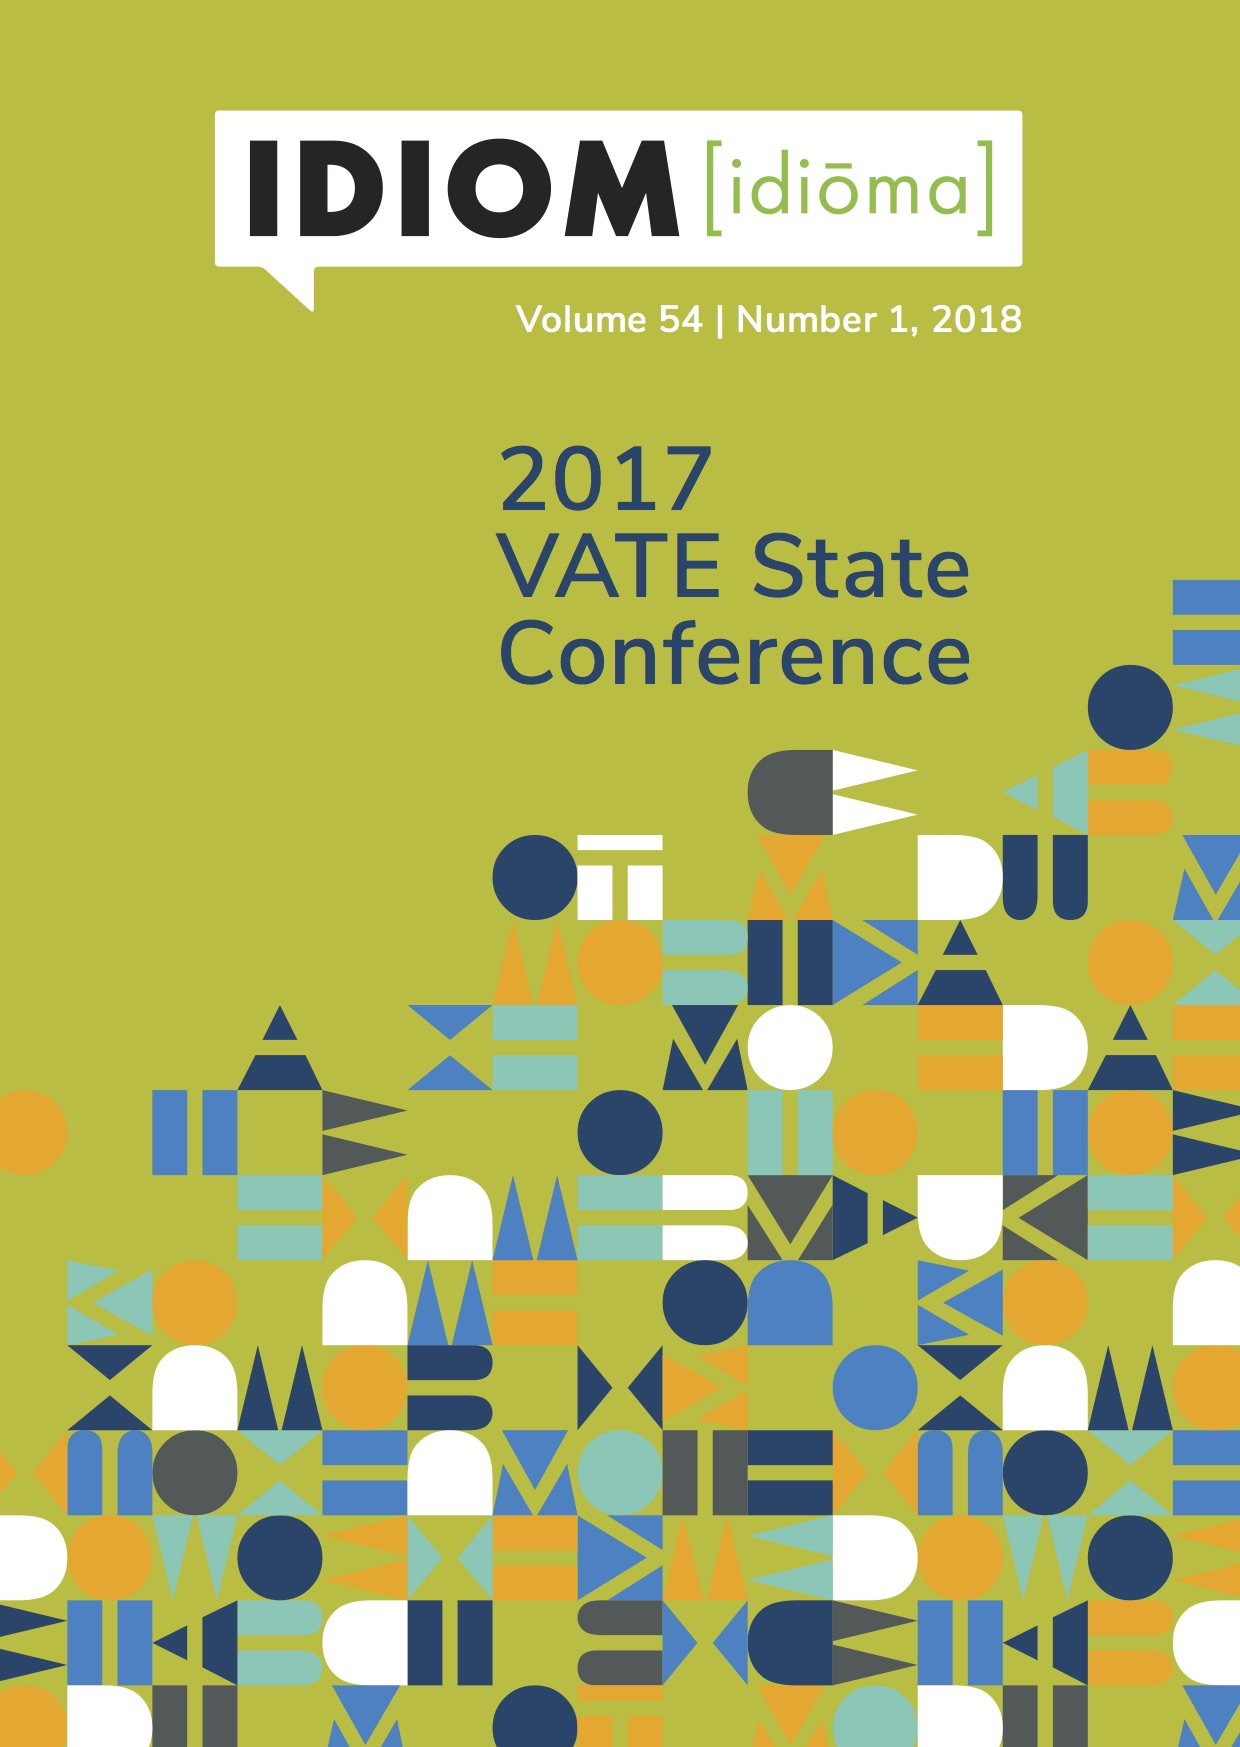 Idiom Volume 54 No 1, 2018 - 2017 VATE State Conference